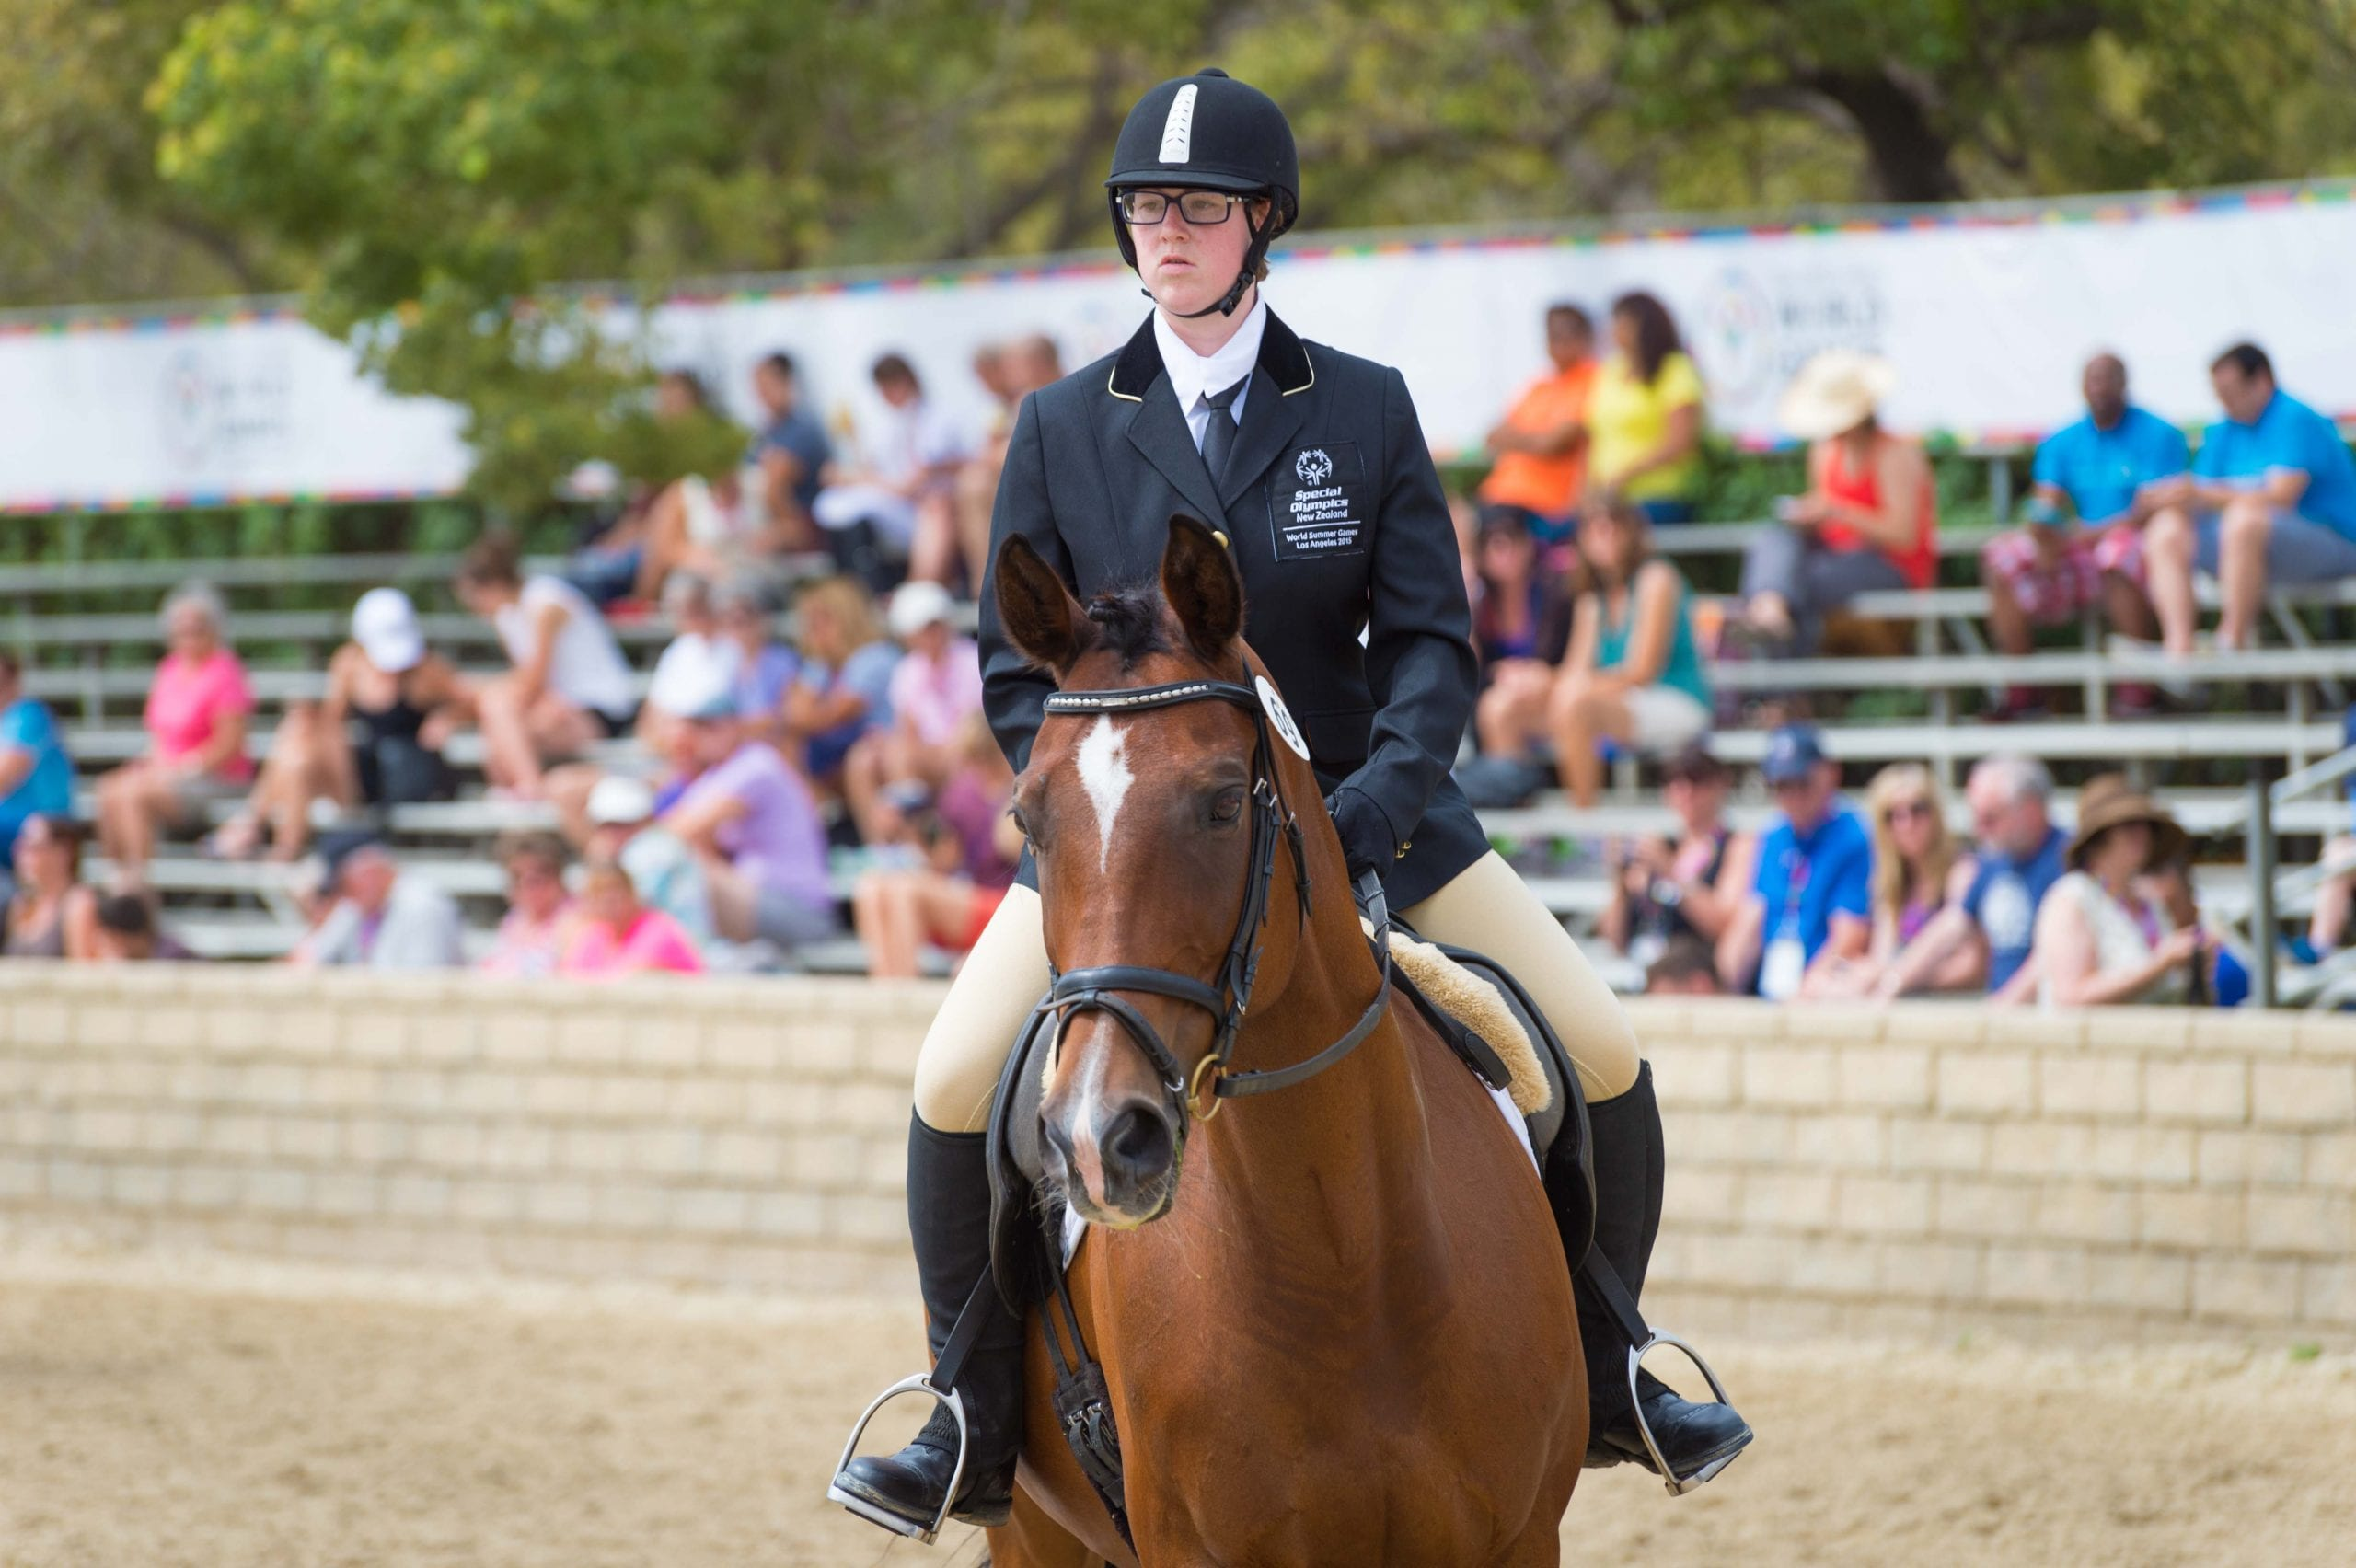 Equestrian30July2015 (31 of 139)